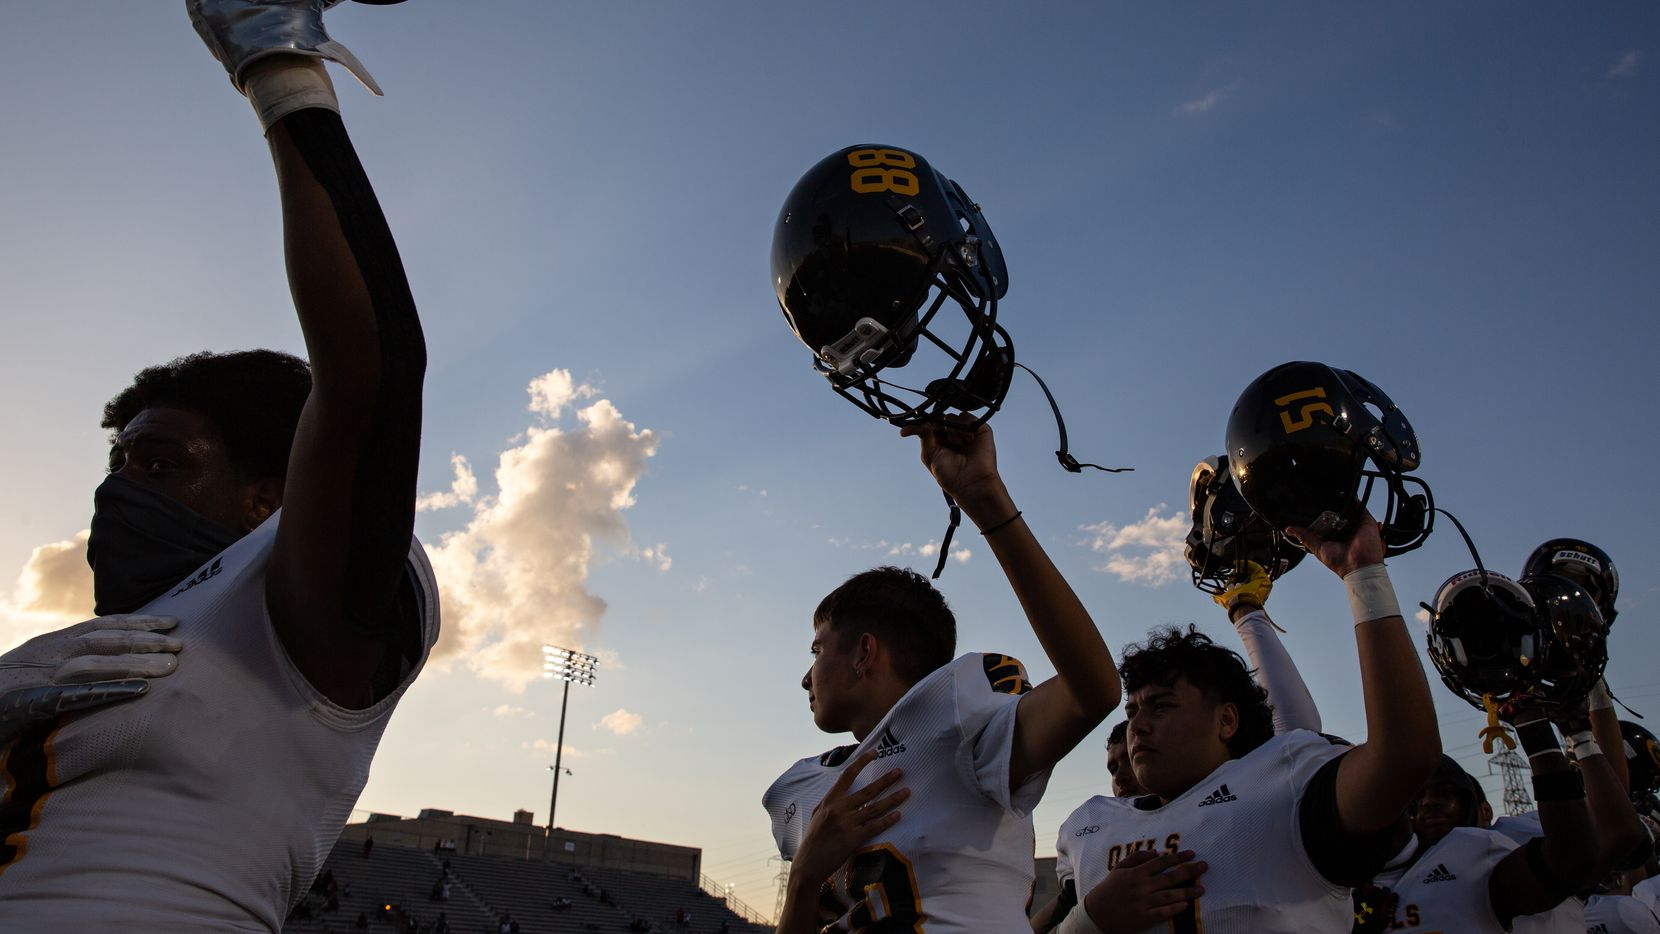 Garland High School football players put their helmets in the air during the Star-Spangled Banner before the season-opening game at Sprague Stadium against Justin F. Kimball High School on August 27, 2021.